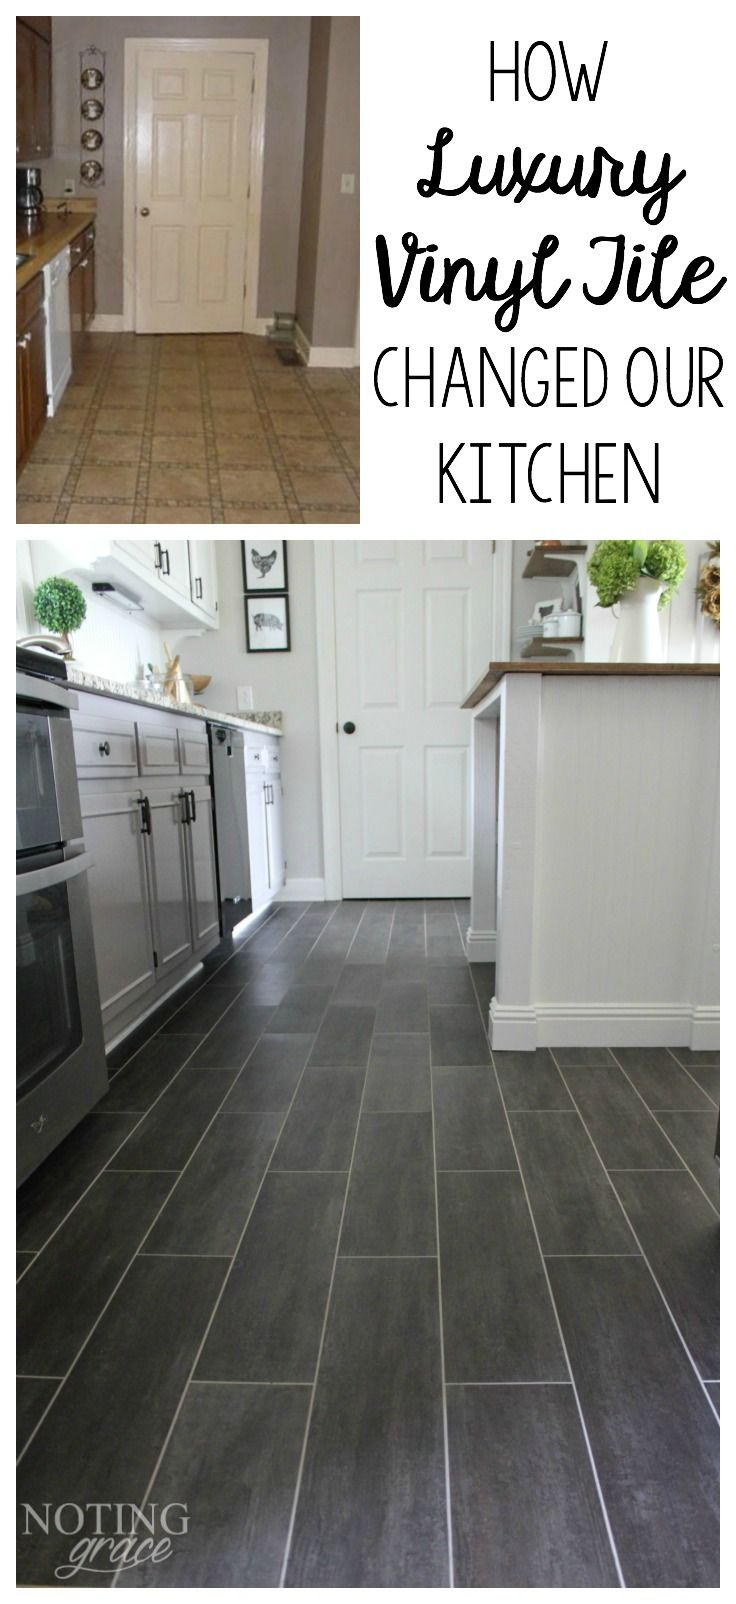 Laminate Floors For Kitchens 17 Best Ideas About Kitchen Flooring On Pinterest Kitchen Floors